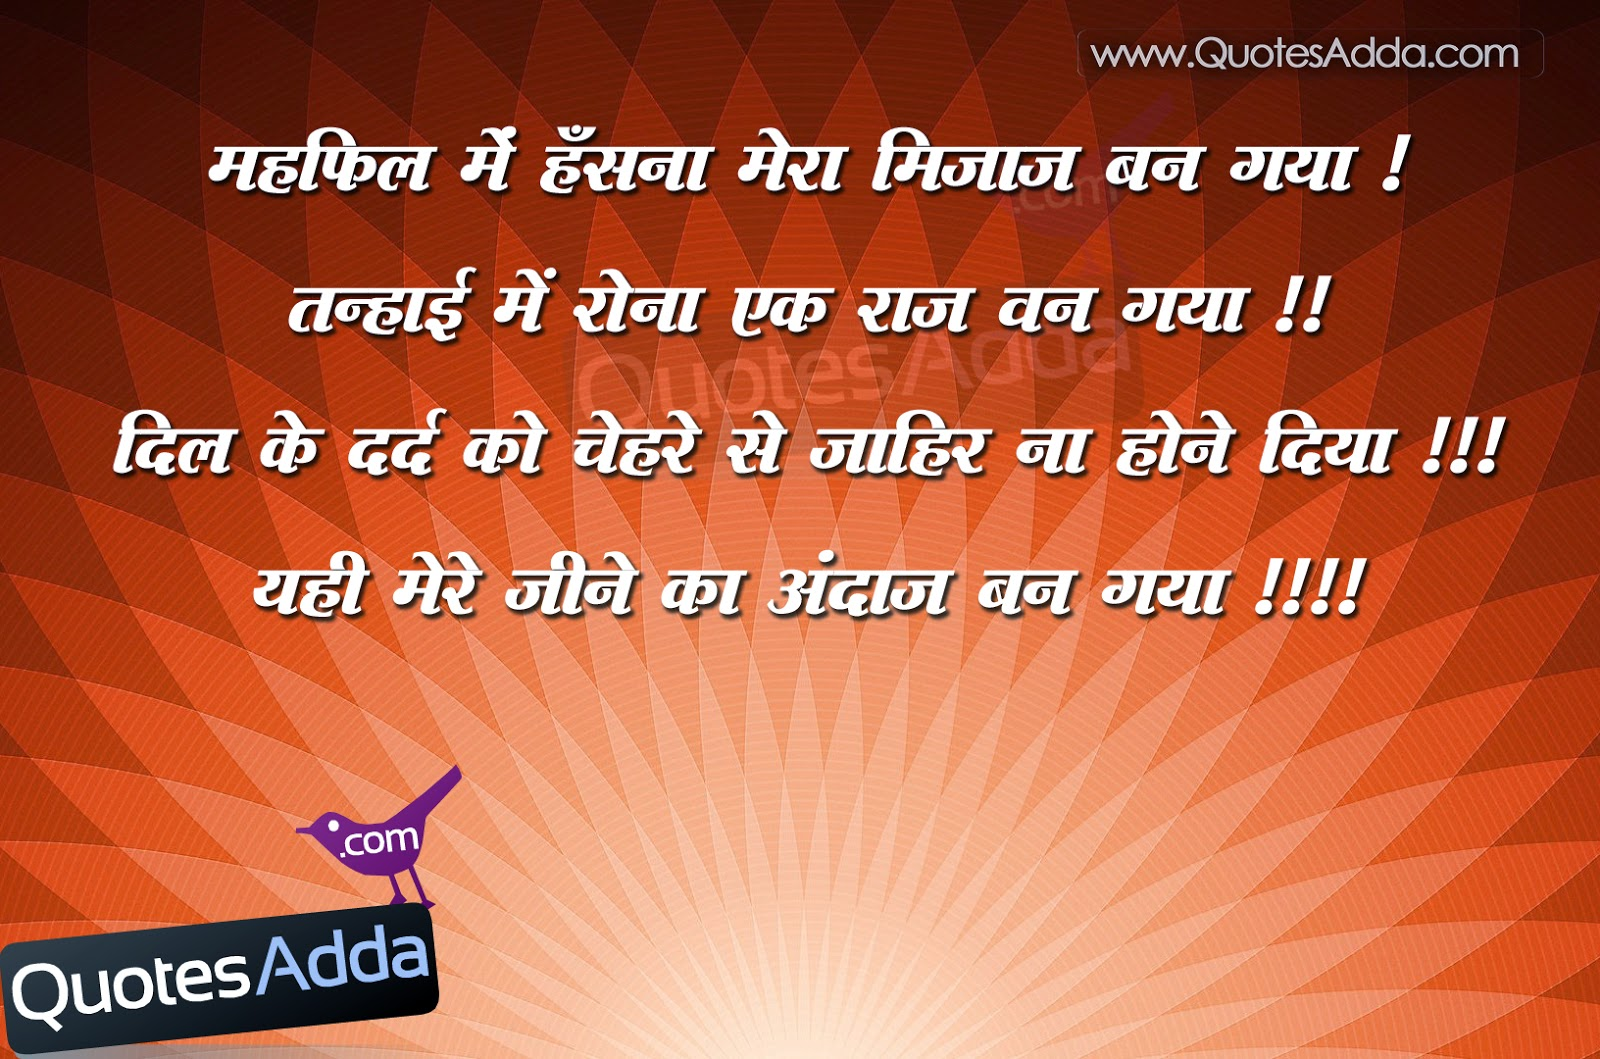 Hindi Nice Quotes On Life And Love : Hindi Quotes About Life. QuotesGram